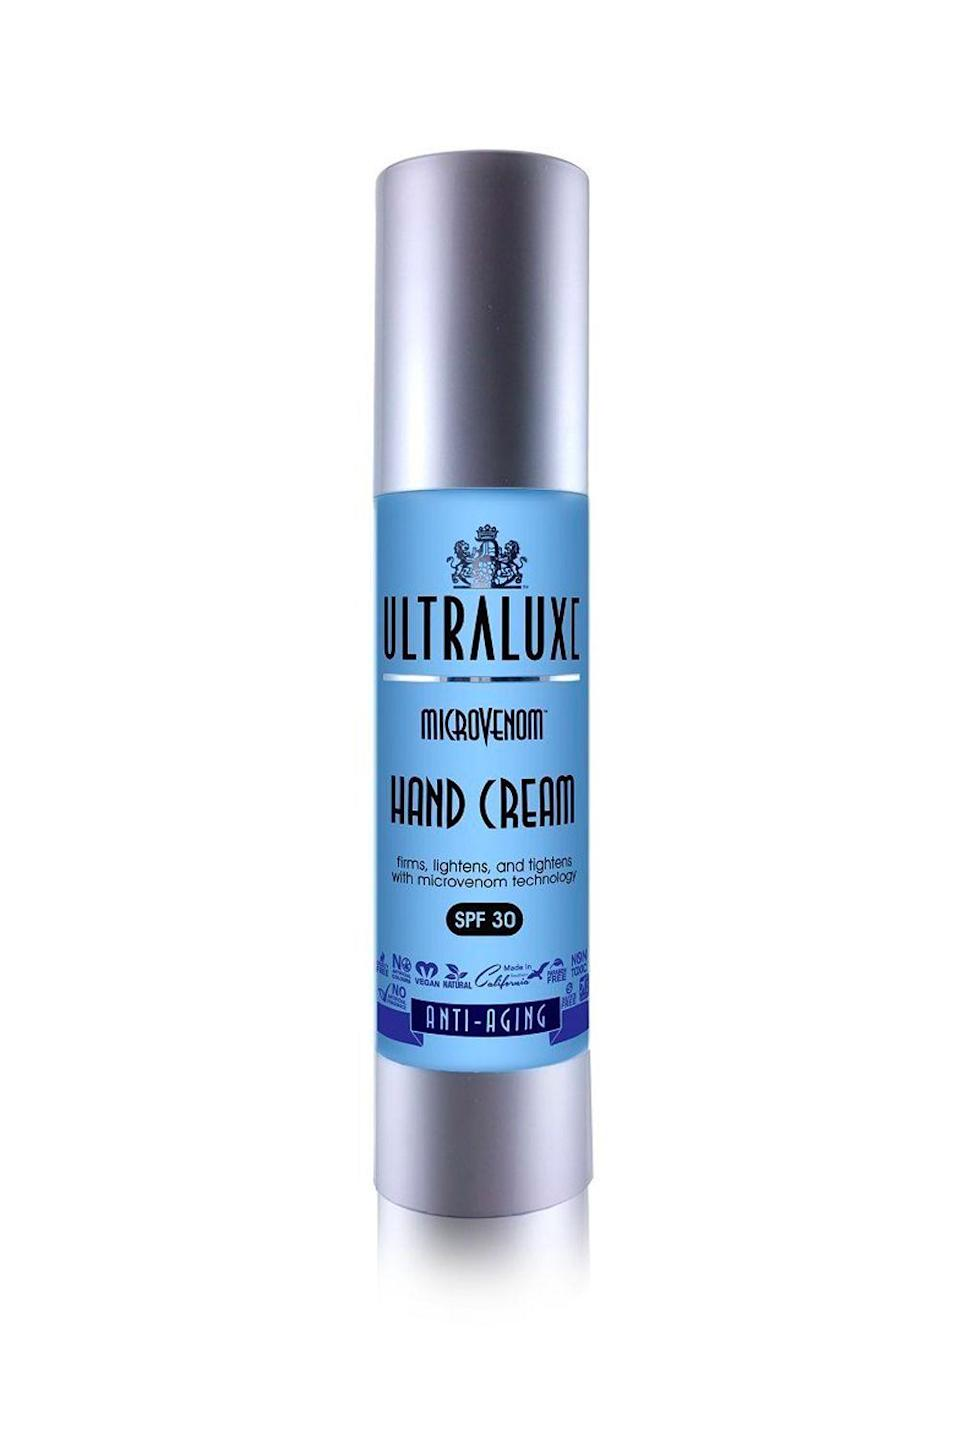 """<p><strong>ULTRALUXE SKIN CARE</strong></p><p>amazon.com</p><p><strong>$29.50</strong></p><p><a href=""""https://www.amazon.com/dp/B01MR2EILO?tag=syn-yahoo-20&ascsubtag=%5Bartid%7C10049.g.36396827%5Bsrc%7Cyahoo-us"""" rel=""""nofollow noopener"""" target=""""_blank"""" data-ylk=""""slk:Shop Now"""" class=""""link rapid-noclick-resp"""">Shop Now</a></p><p>Let me introduce to you the two brightening stars in this SPF hand cream: bearberry extract and <a href=""""https://www.cosmopolitan.com/style-beauty/beauty/g12091058/best-vitamin-c-serum-face-skin/"""" rel=""""nofollow noopener"""" target=""""_blank"""" data-ylk=""""slk:vitamin C"""" class=""""link rapid-noclick-resp"""">vitamin C</a>. Together <strong>these two help brighten up dull skin,</strong> while the formula's antioxidants ('sup, green tea extract) work to keep your hands soft and smooth.</p>"""